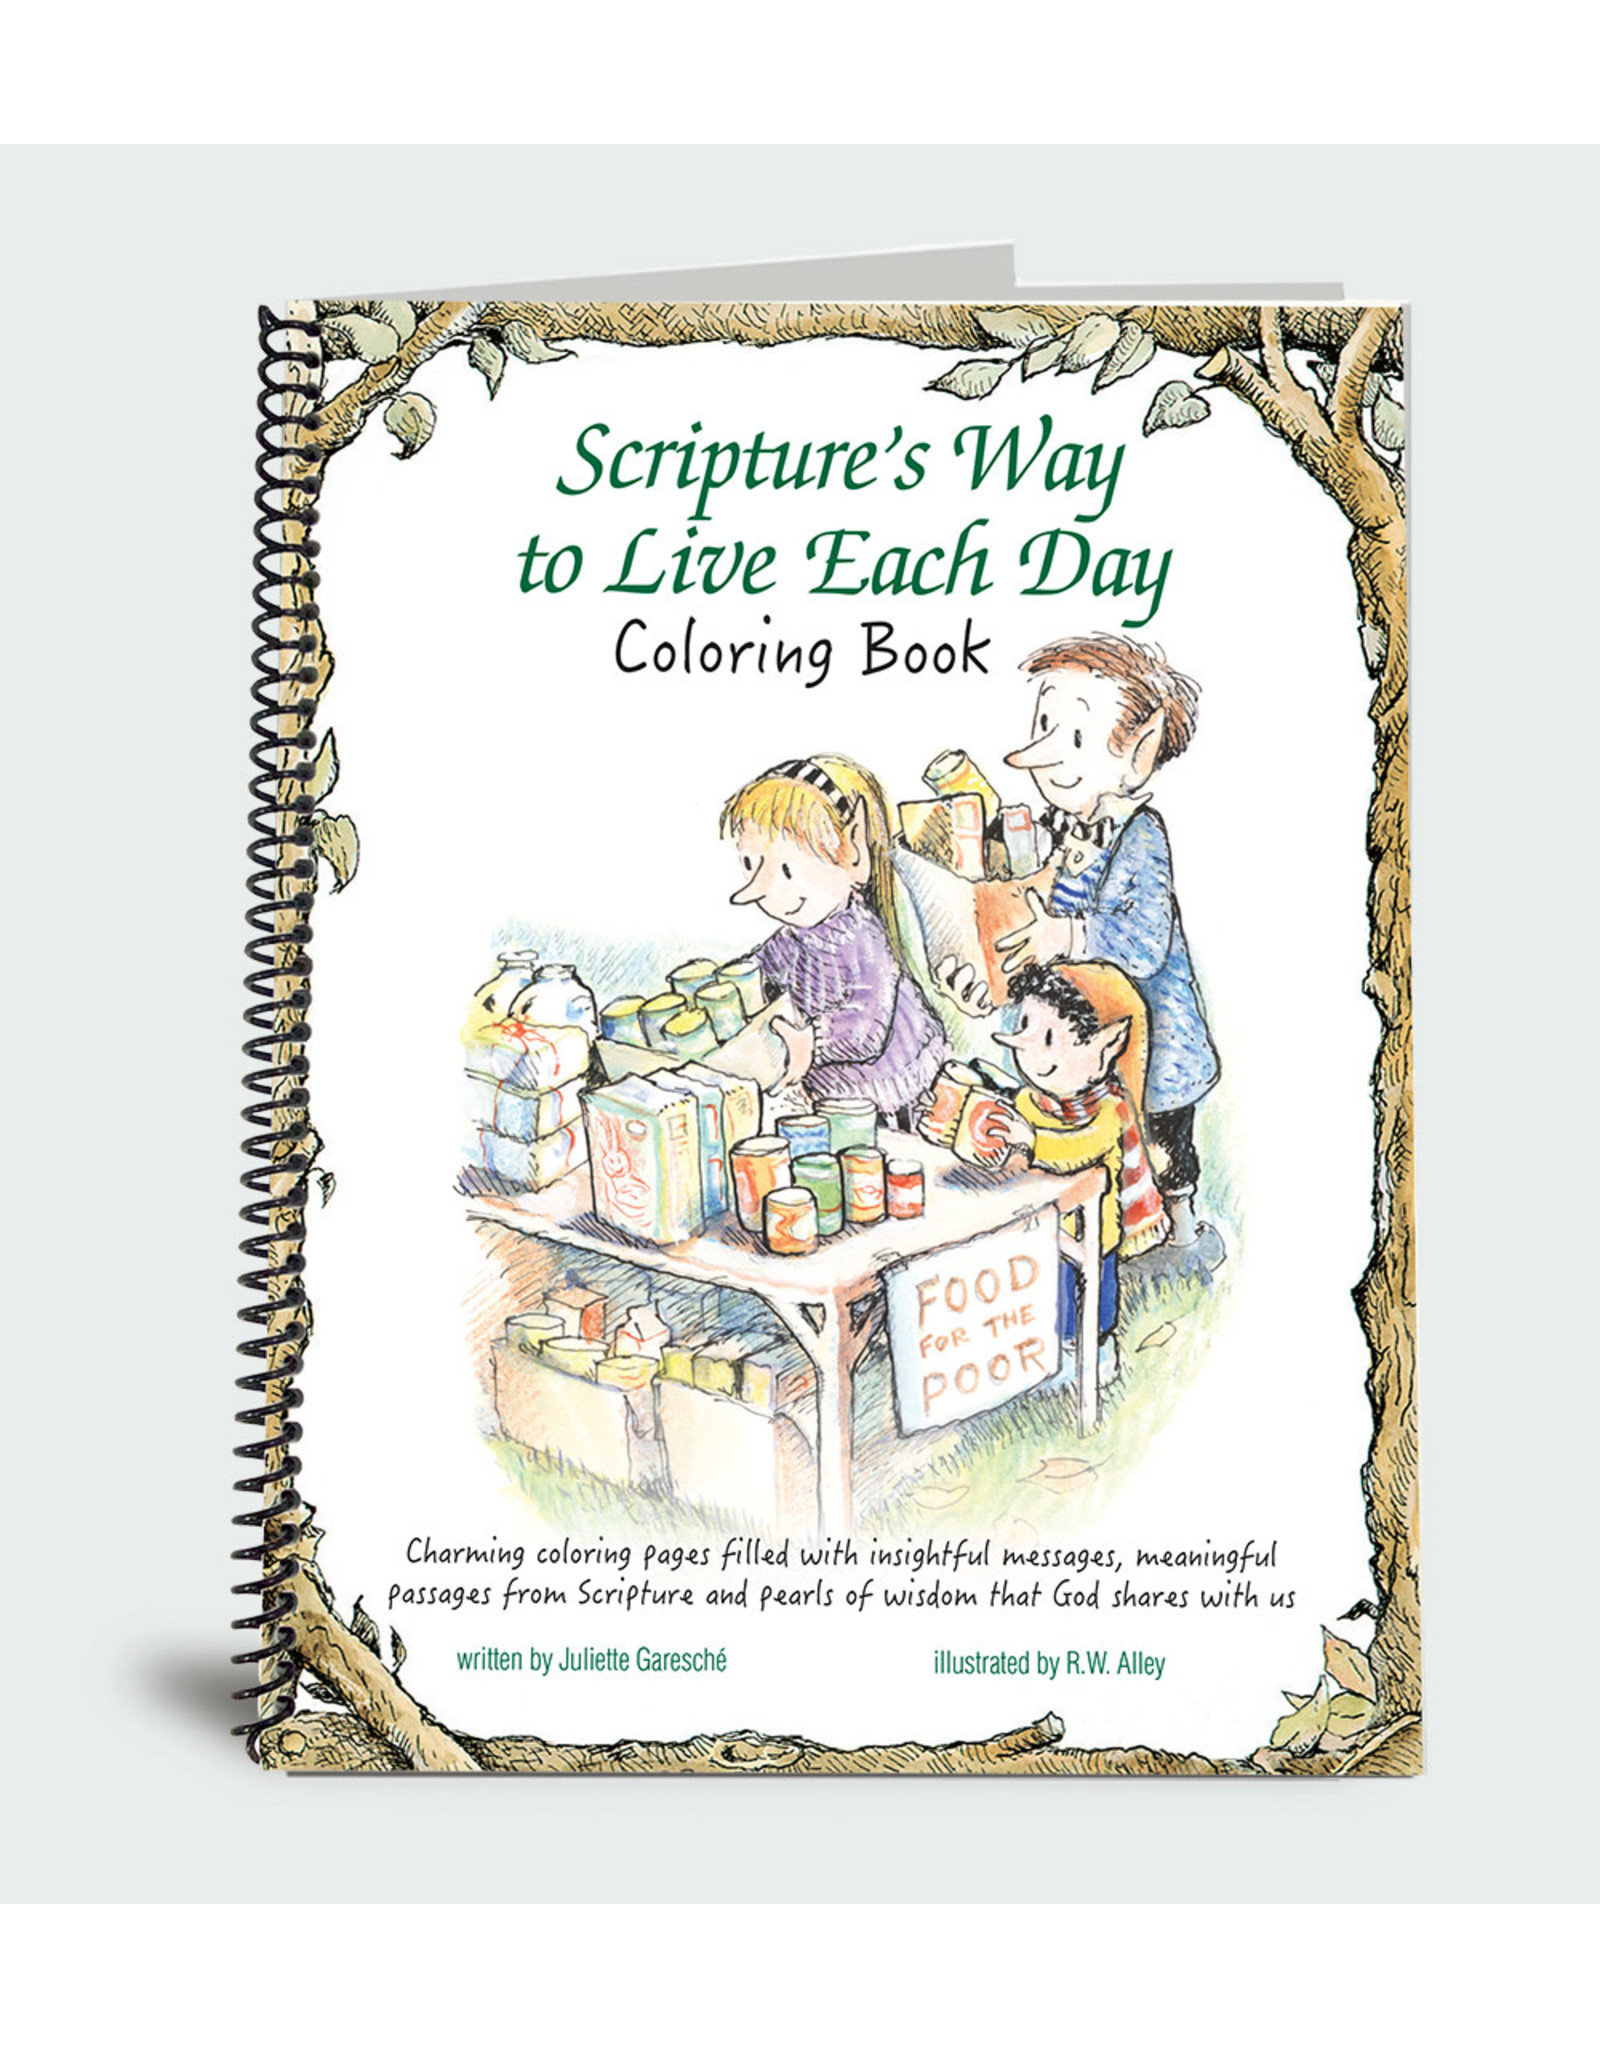 Elf Help Coloring Book - Scripture's Way to Live Each Day